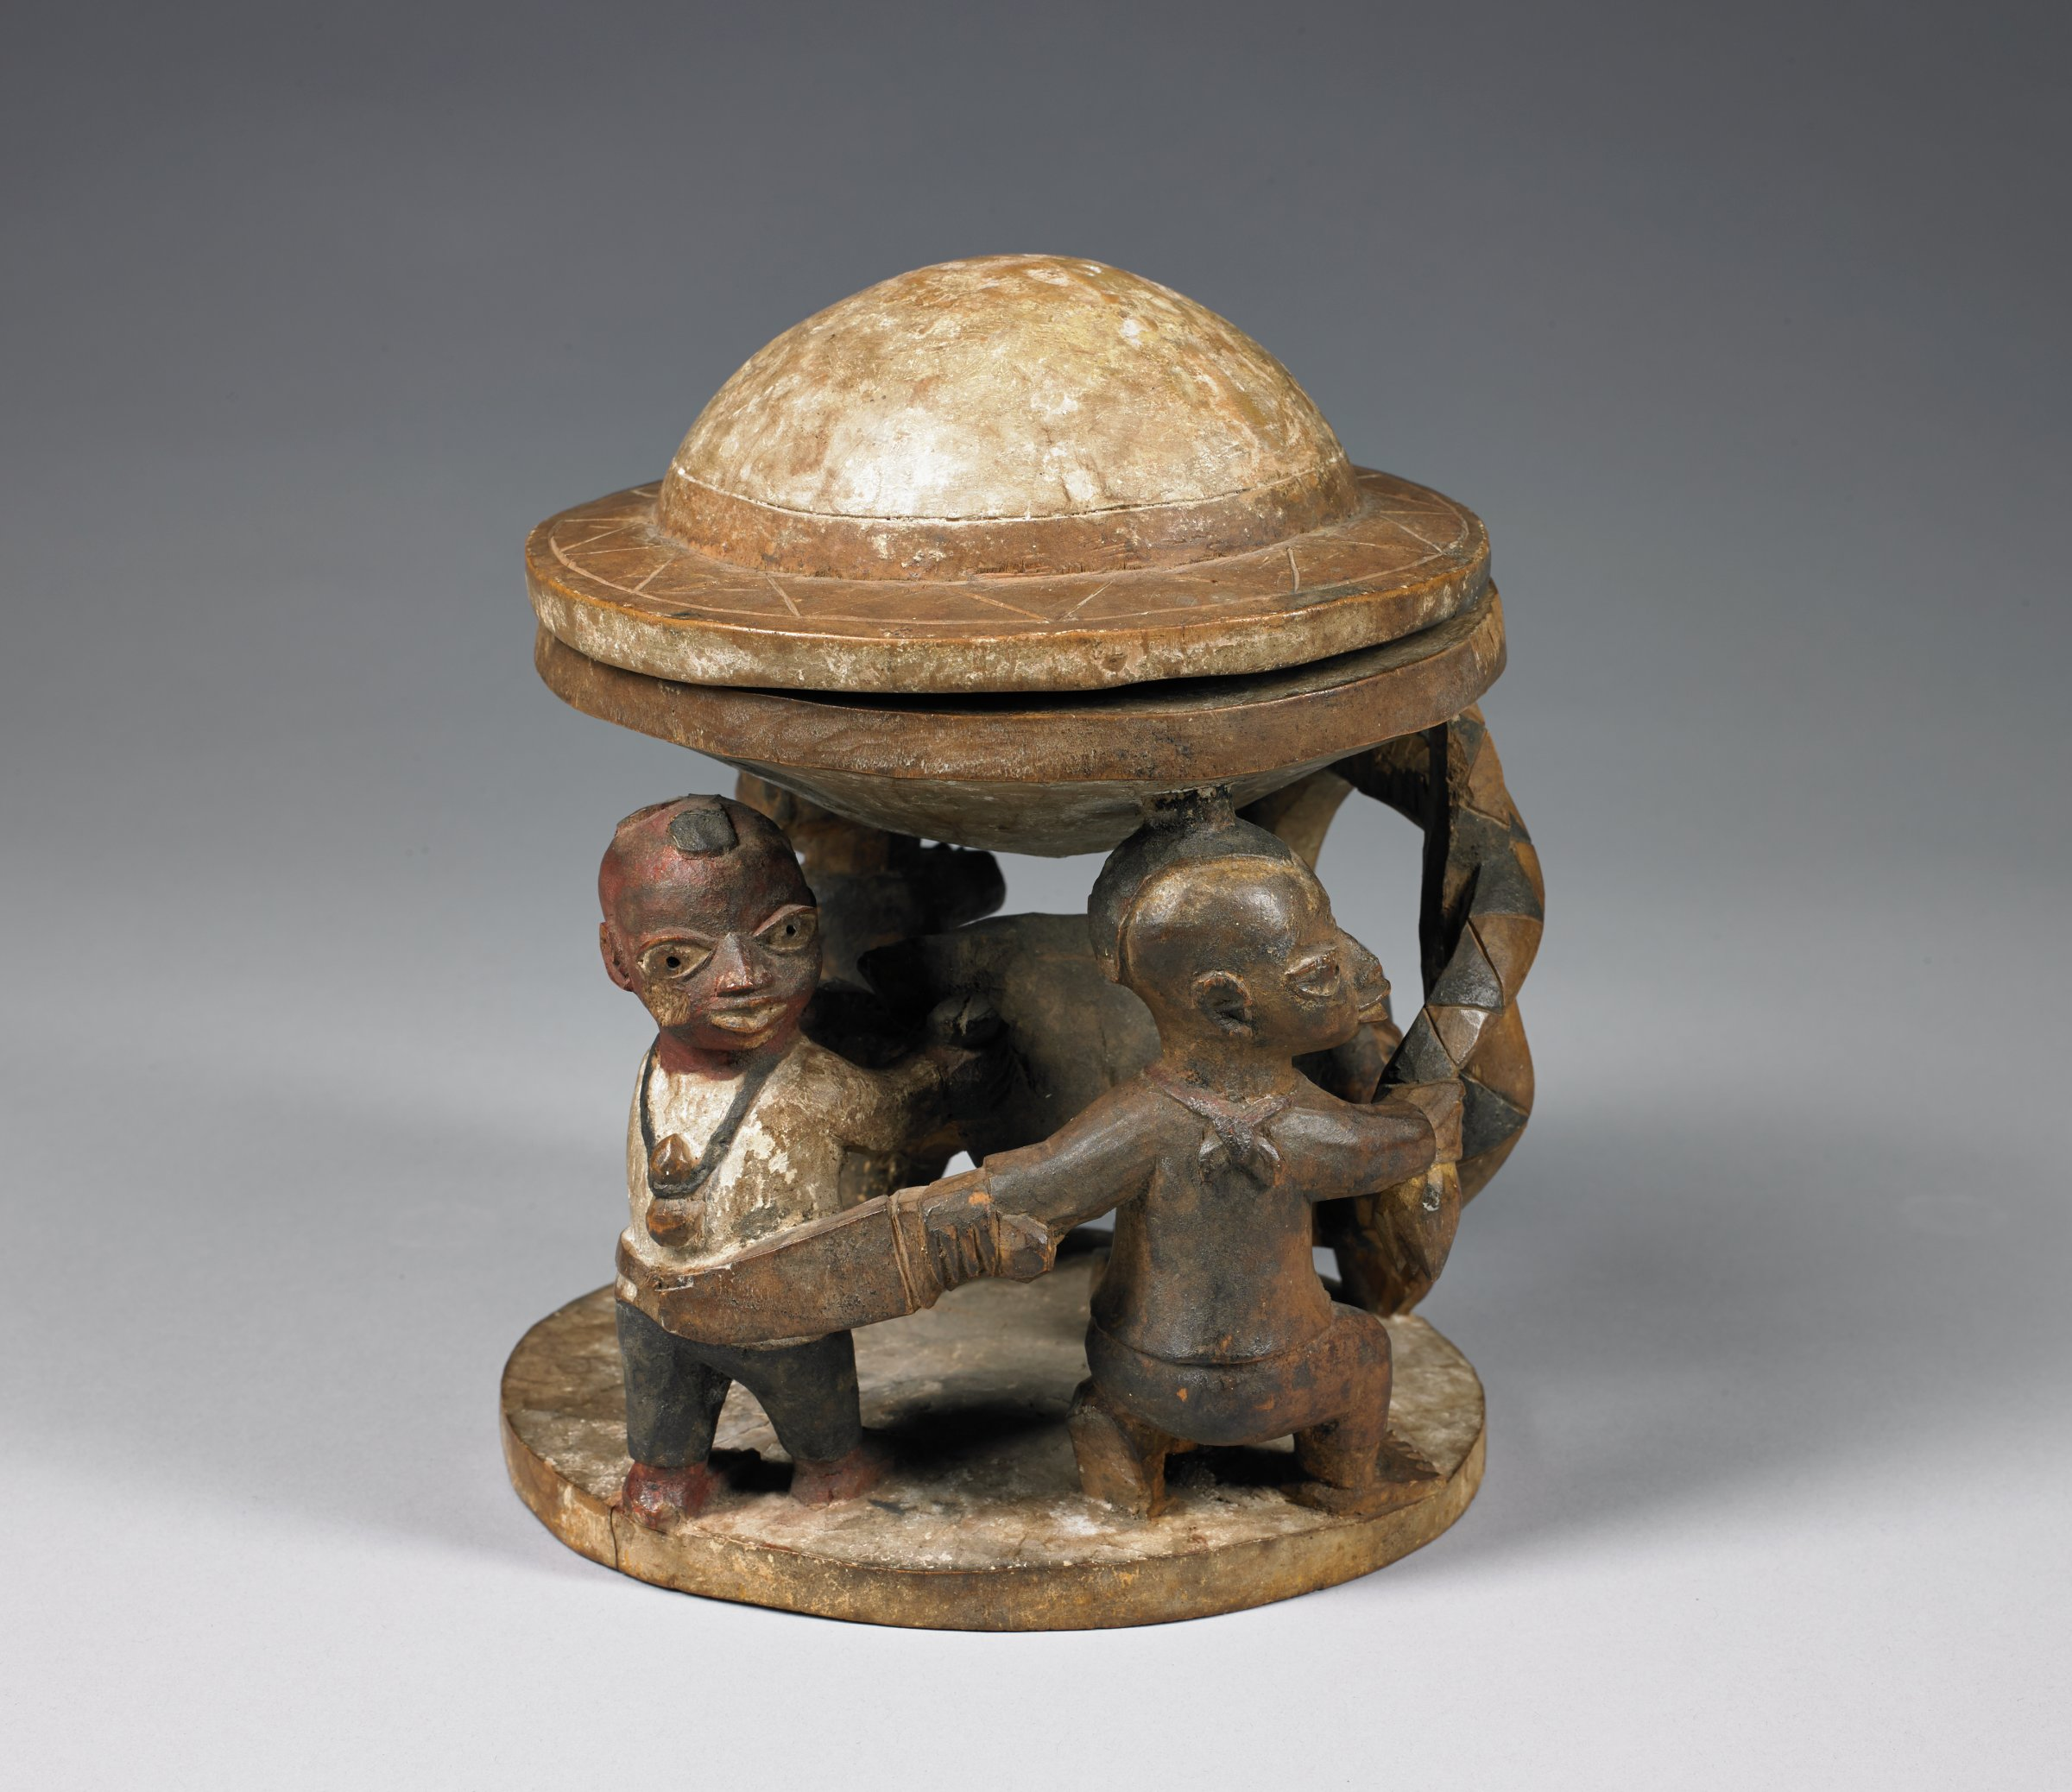 Carved wood bowl with lid carved as a pith helmet, python attacking boar or warthog, with several human figures. Used to hold kola nuts for divination.